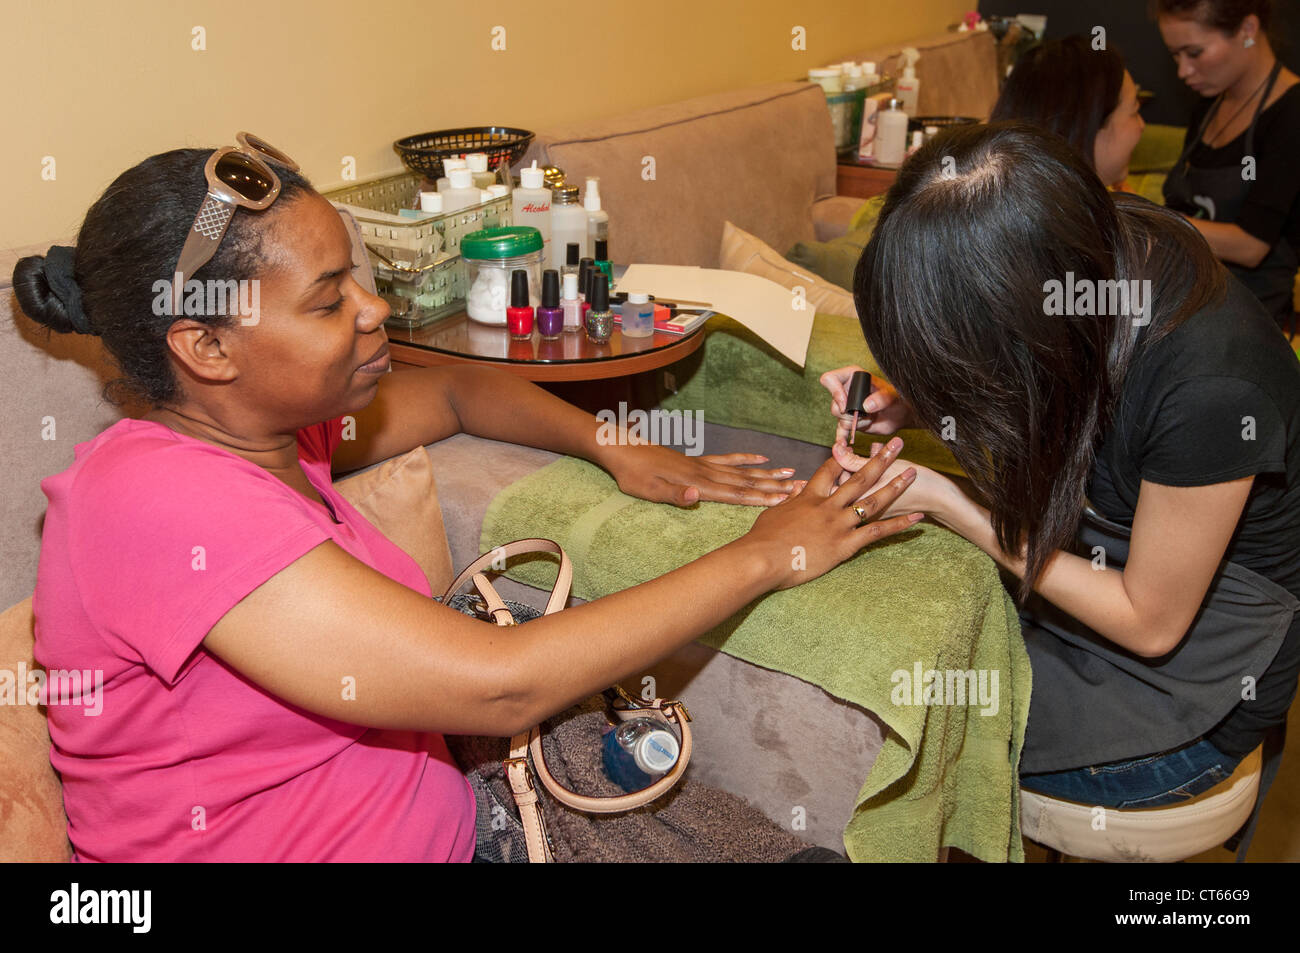 Women getting their nails done at a spa and salon Stock Photo ...